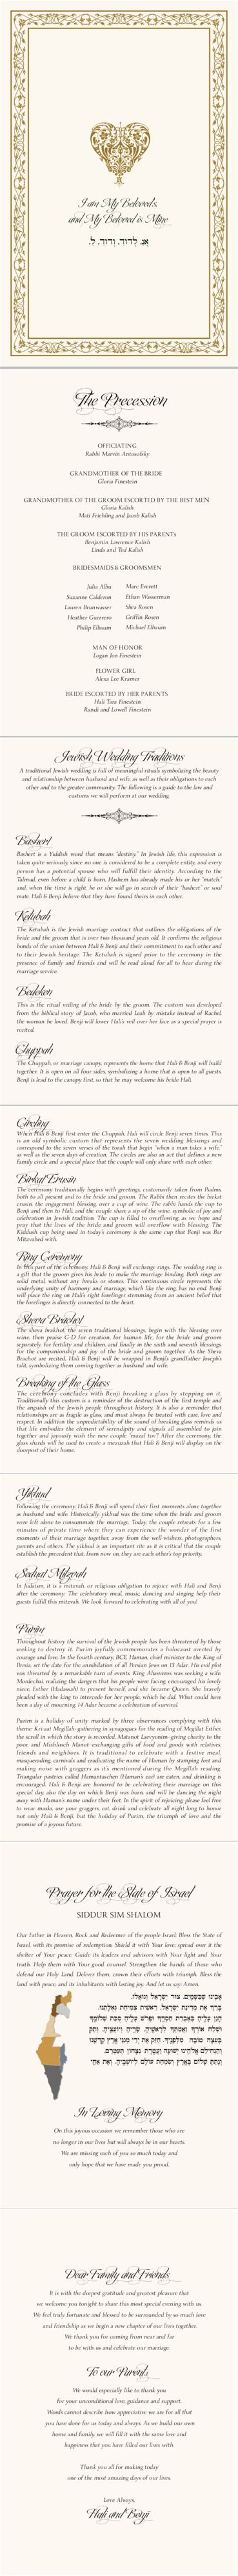 Prayer for Israel-Jewish Wedding Programs